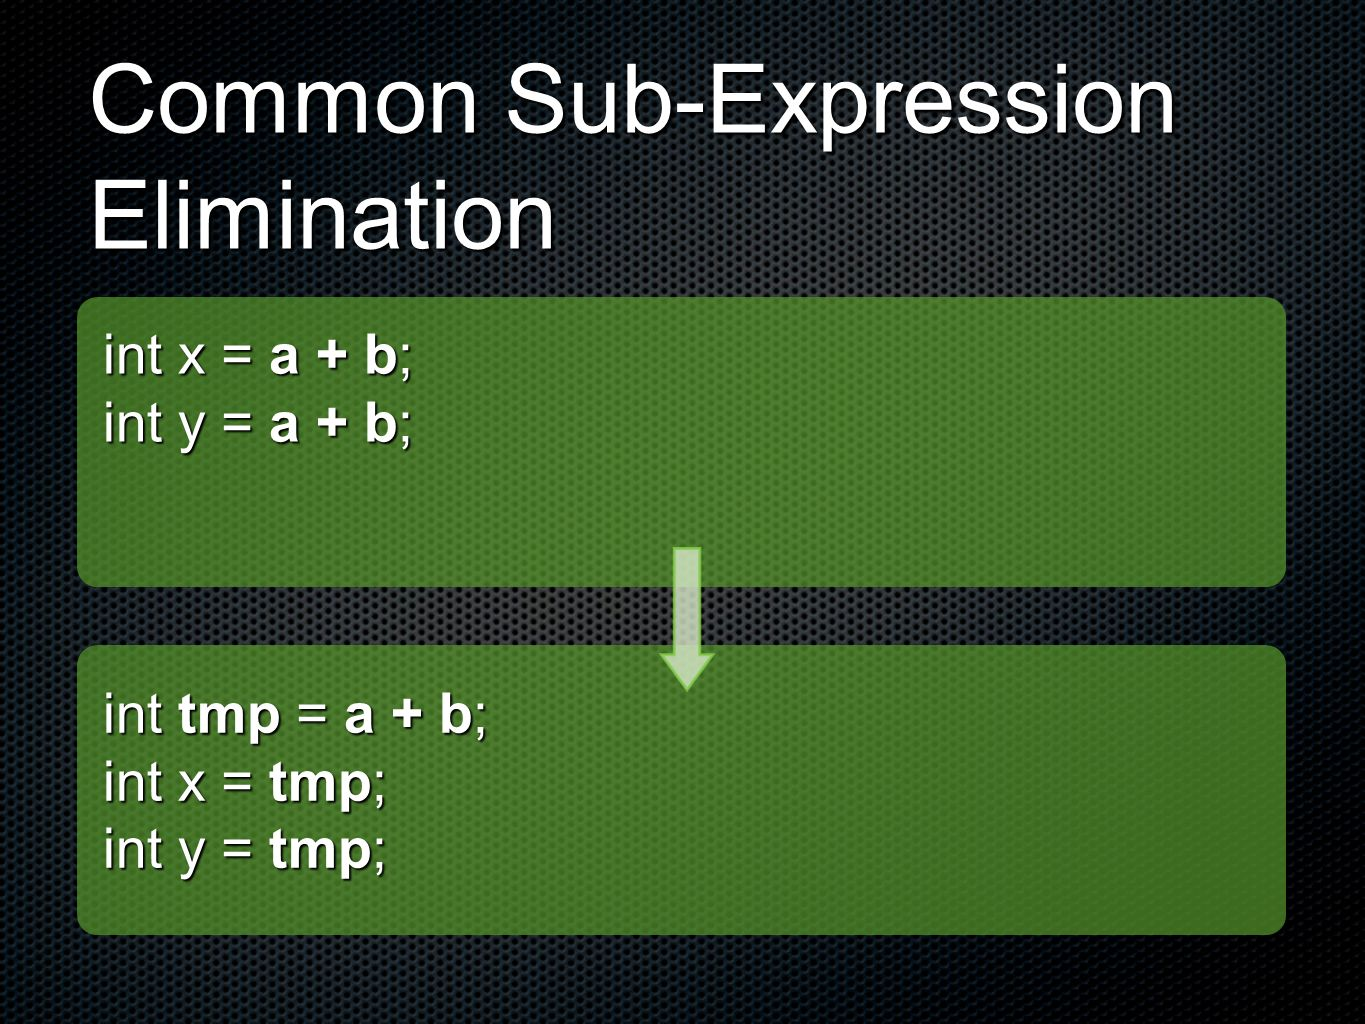 Common Sub-Expression Elimination int x = a + b; int y = a + b; int tmp = a + b; int x = tmp; int y = tmp;